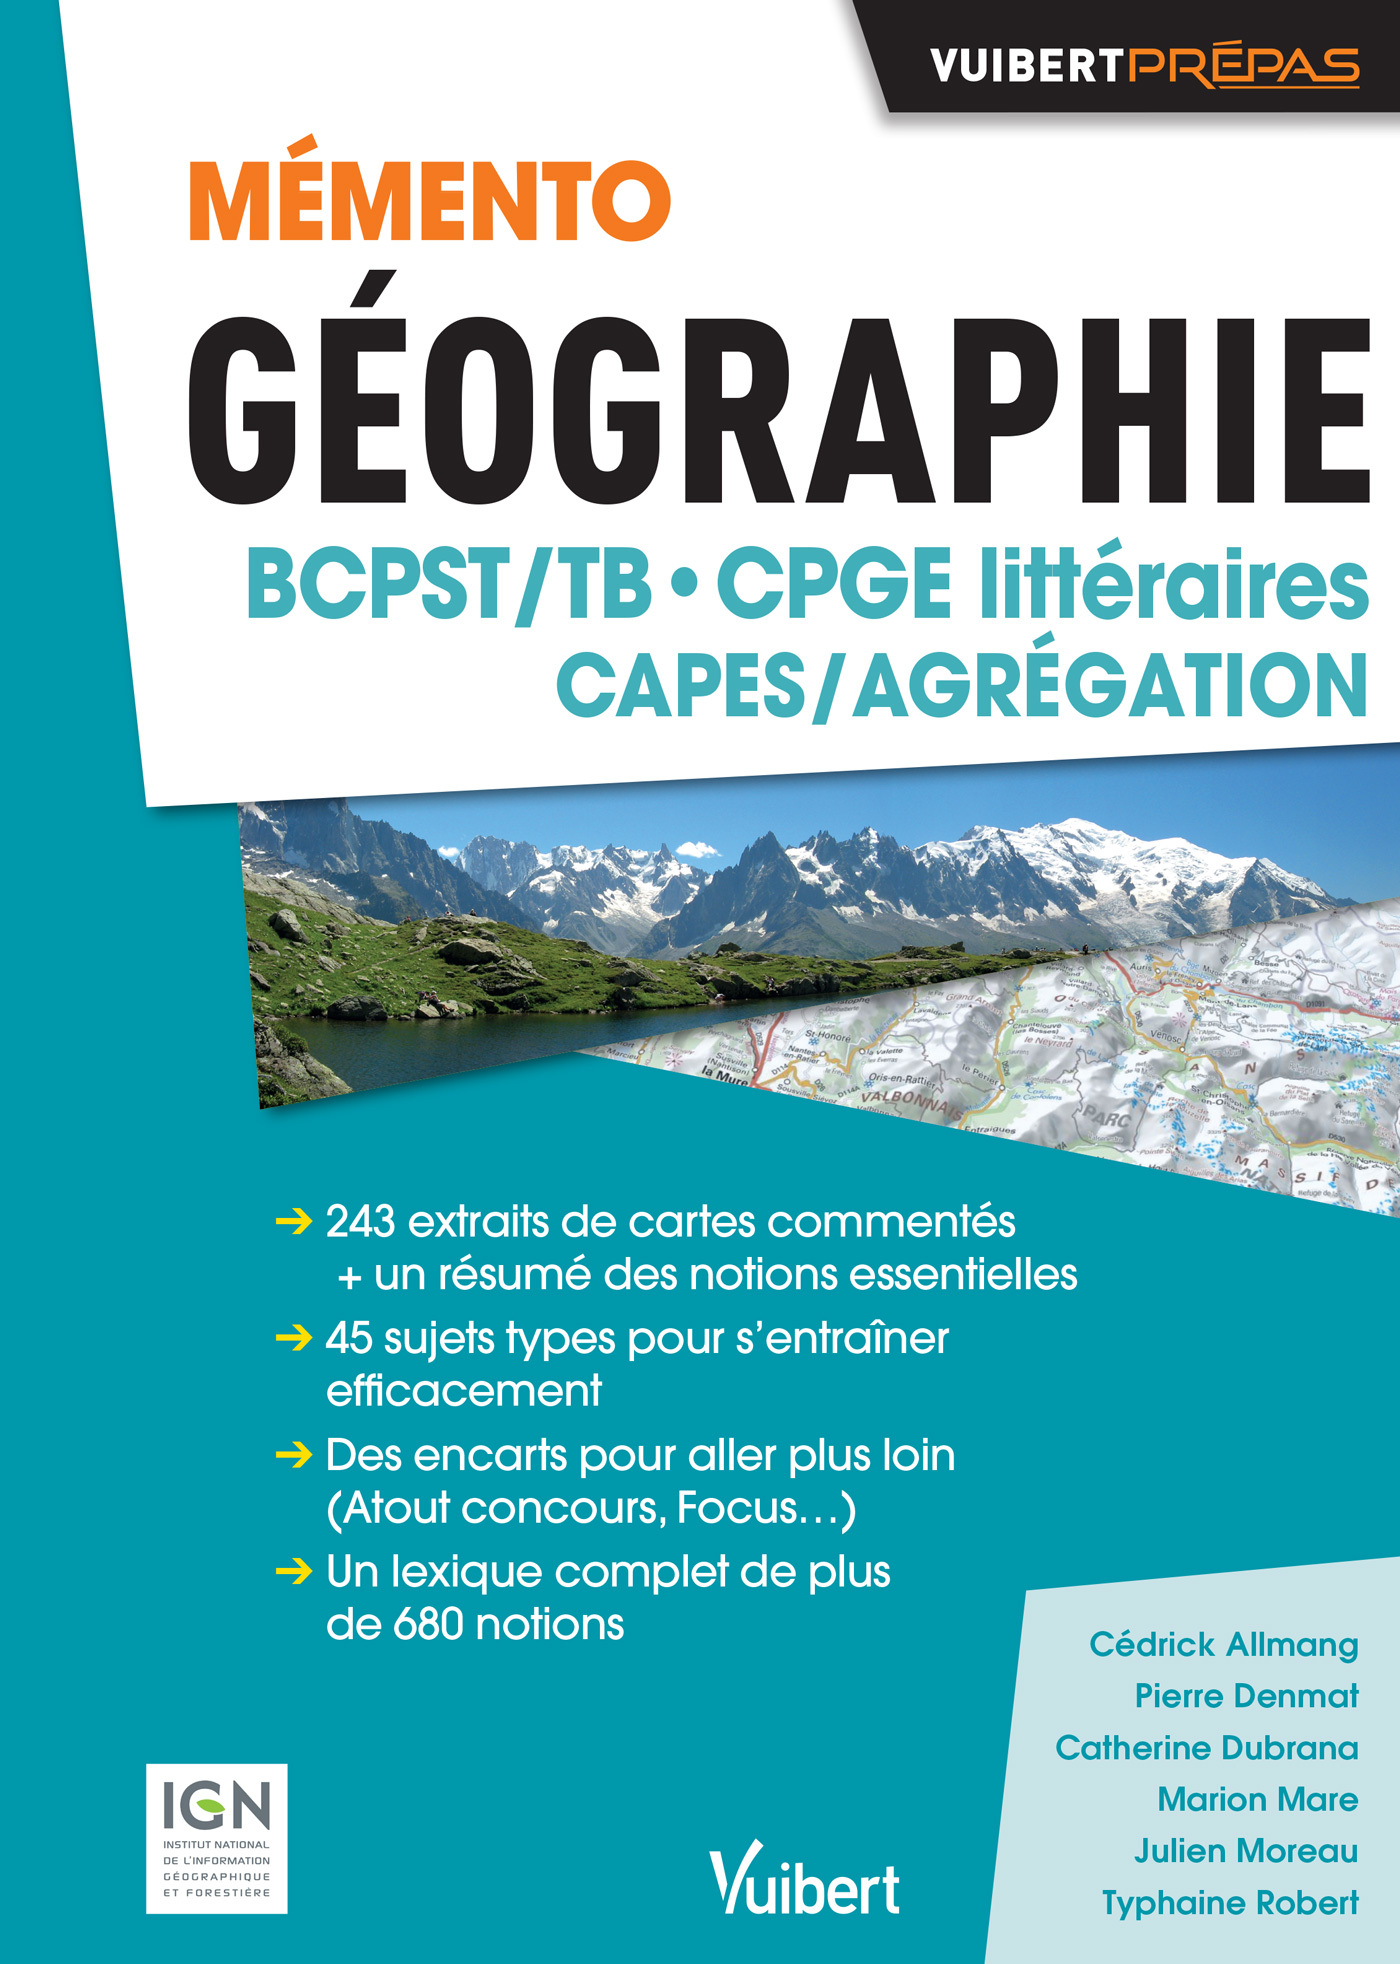 MEMENTO GEOGRAPHIE BCPST/TB CPGE LITTERAIRES CAPES/AGREGATION